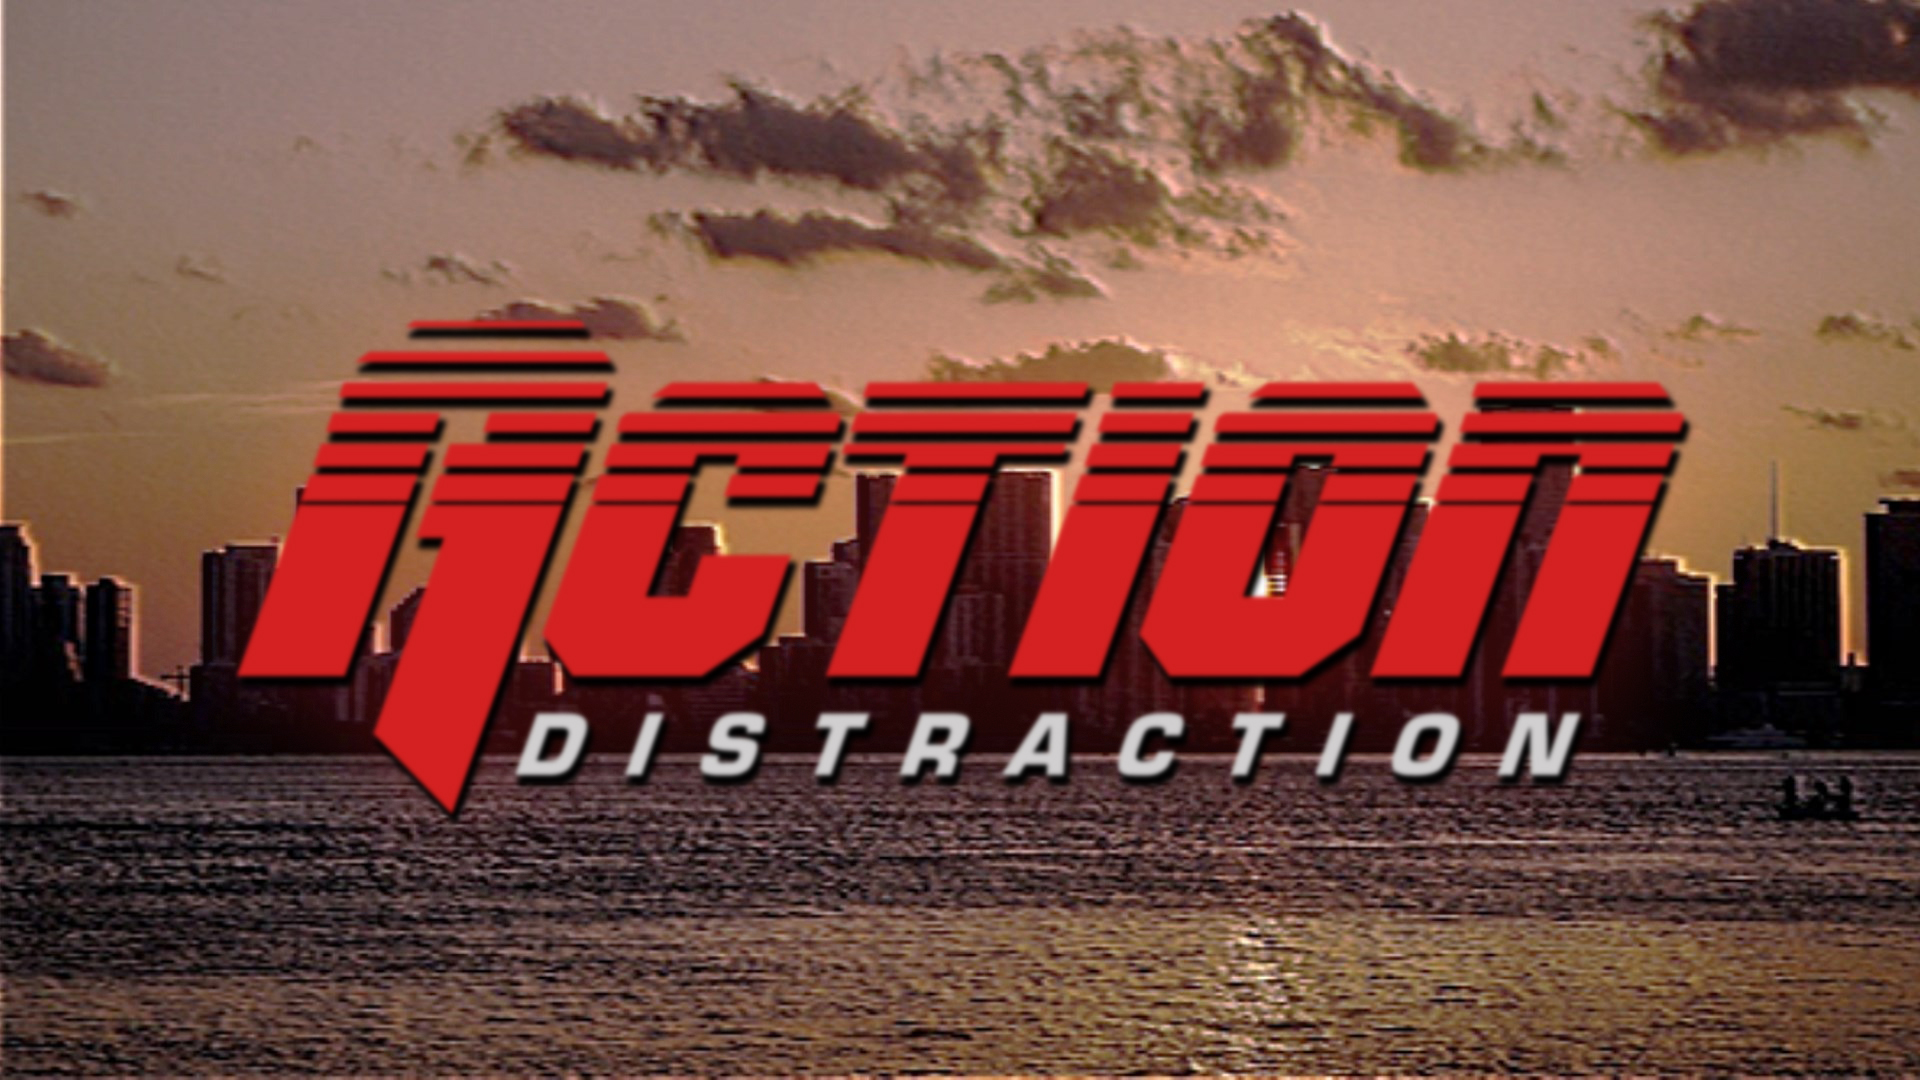 Virtual: Action Distraction